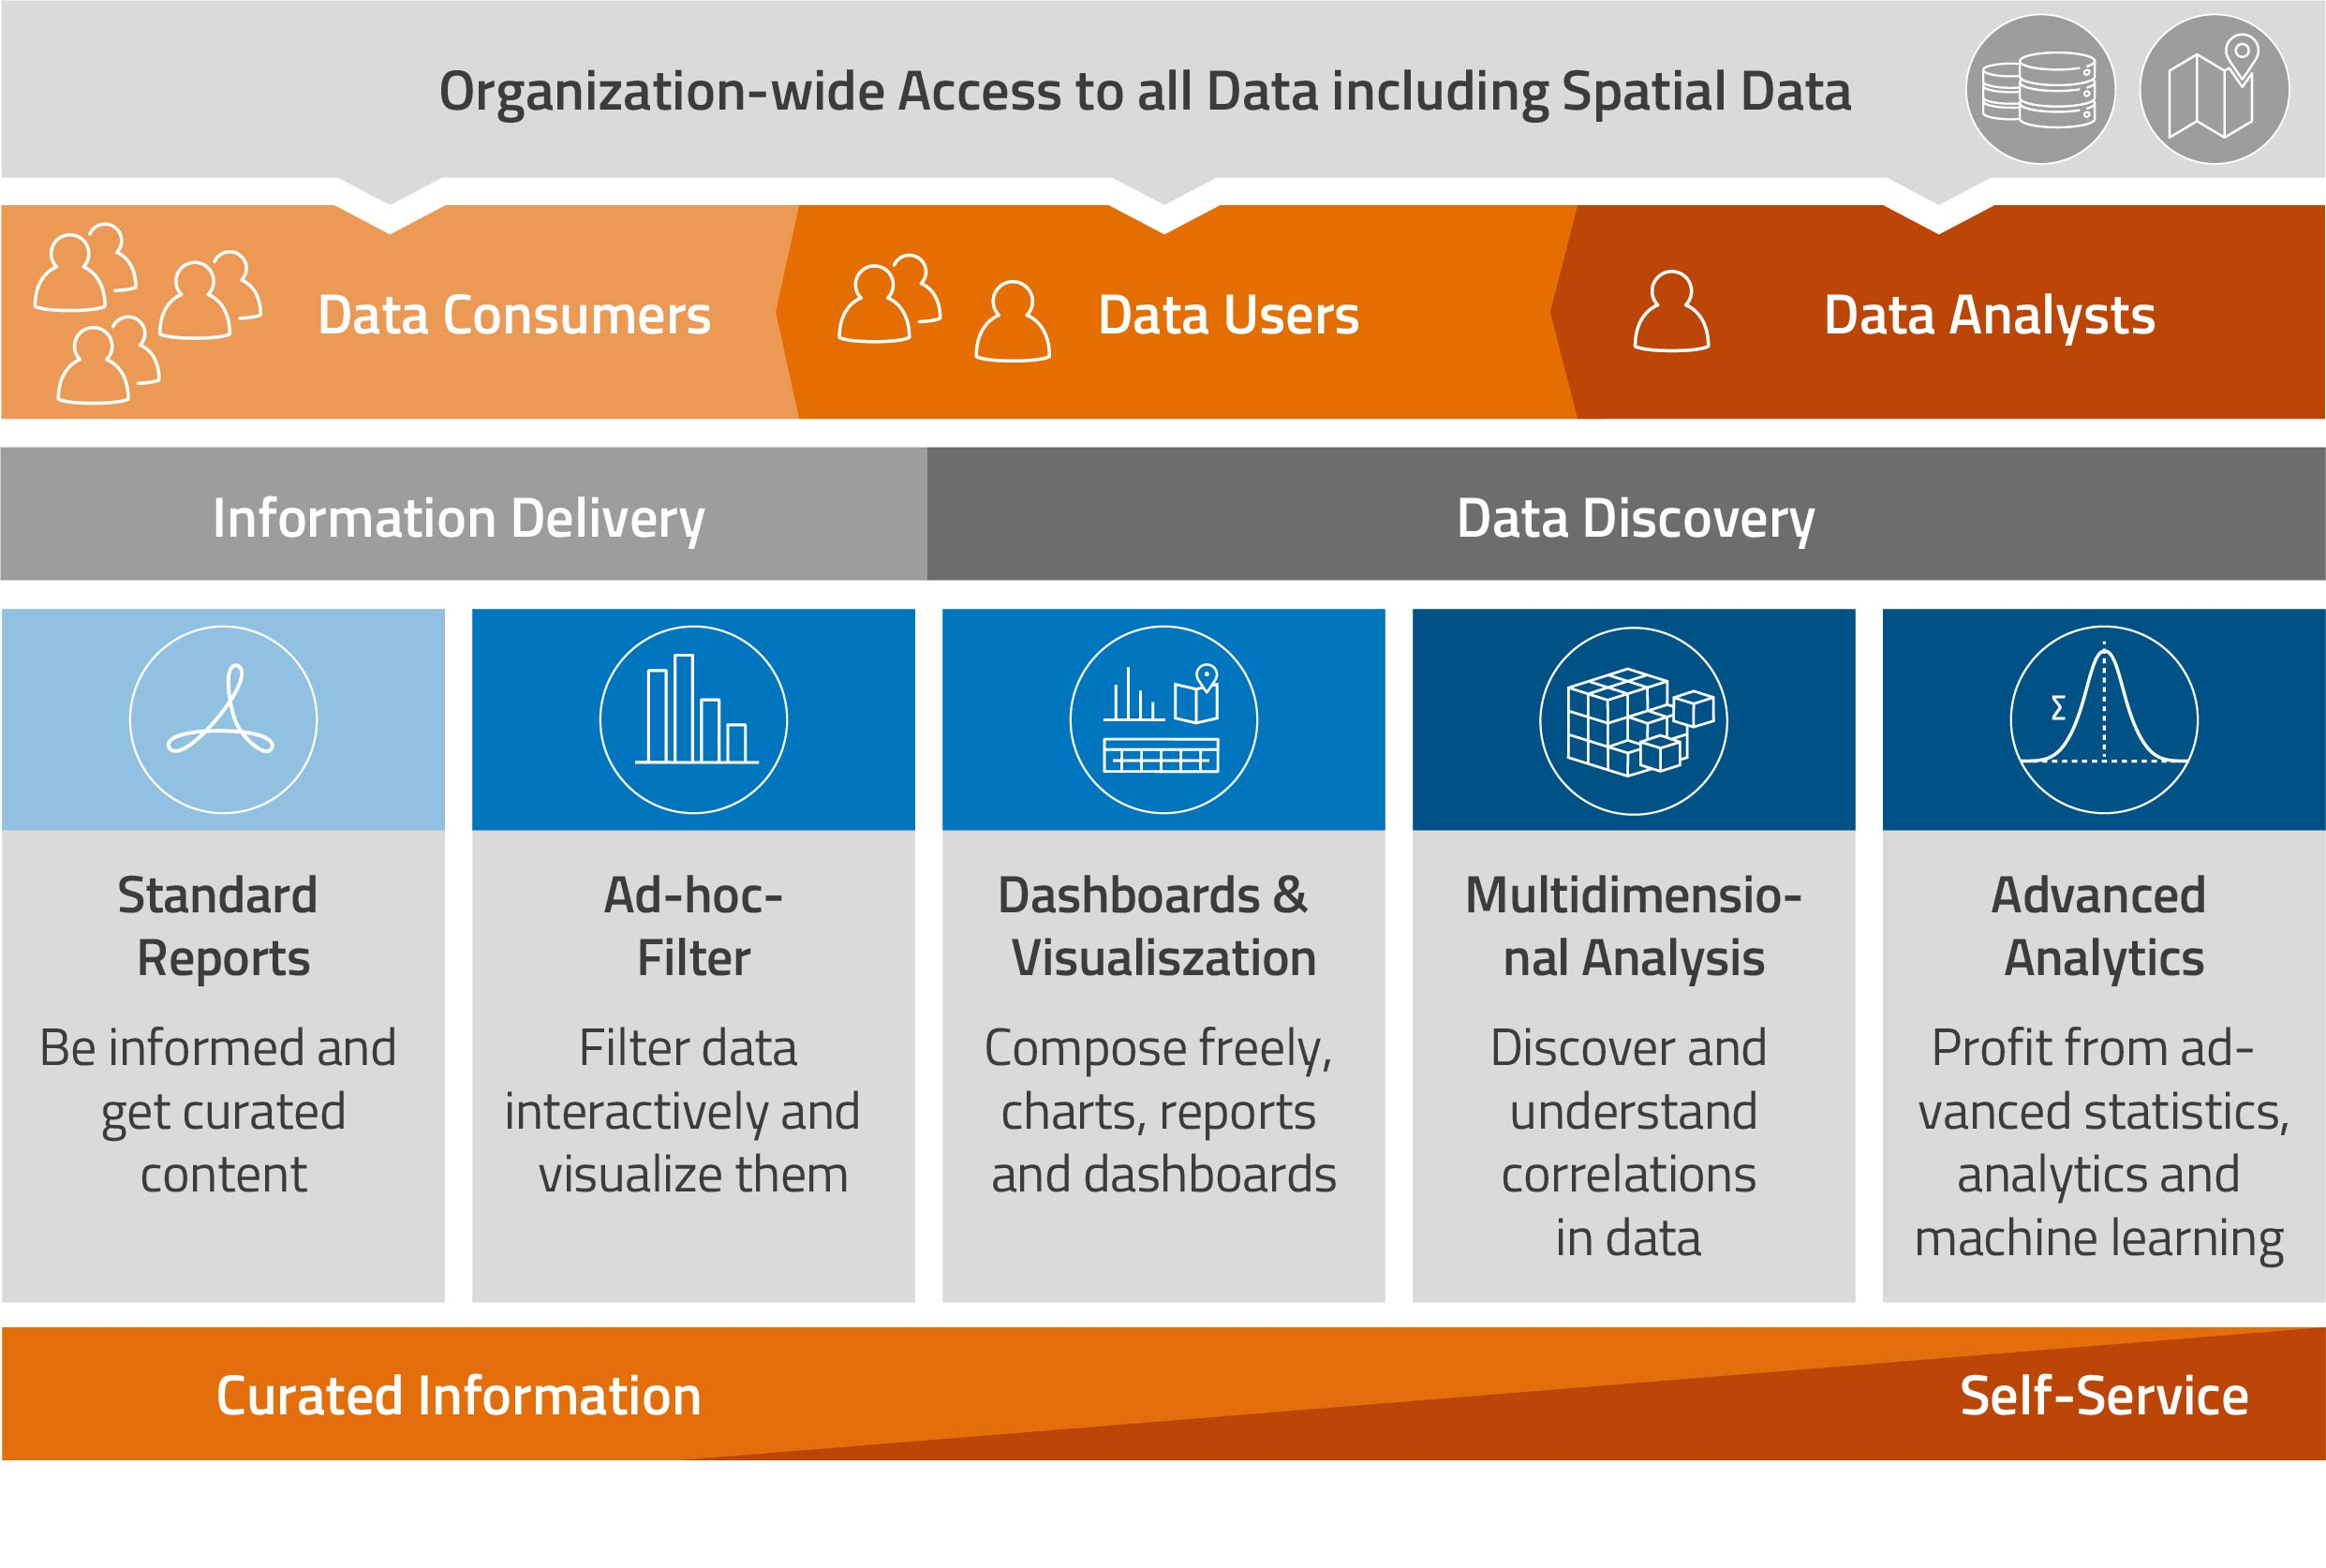 A single data analysis tool for your entire organization – collaboration and on-demand access